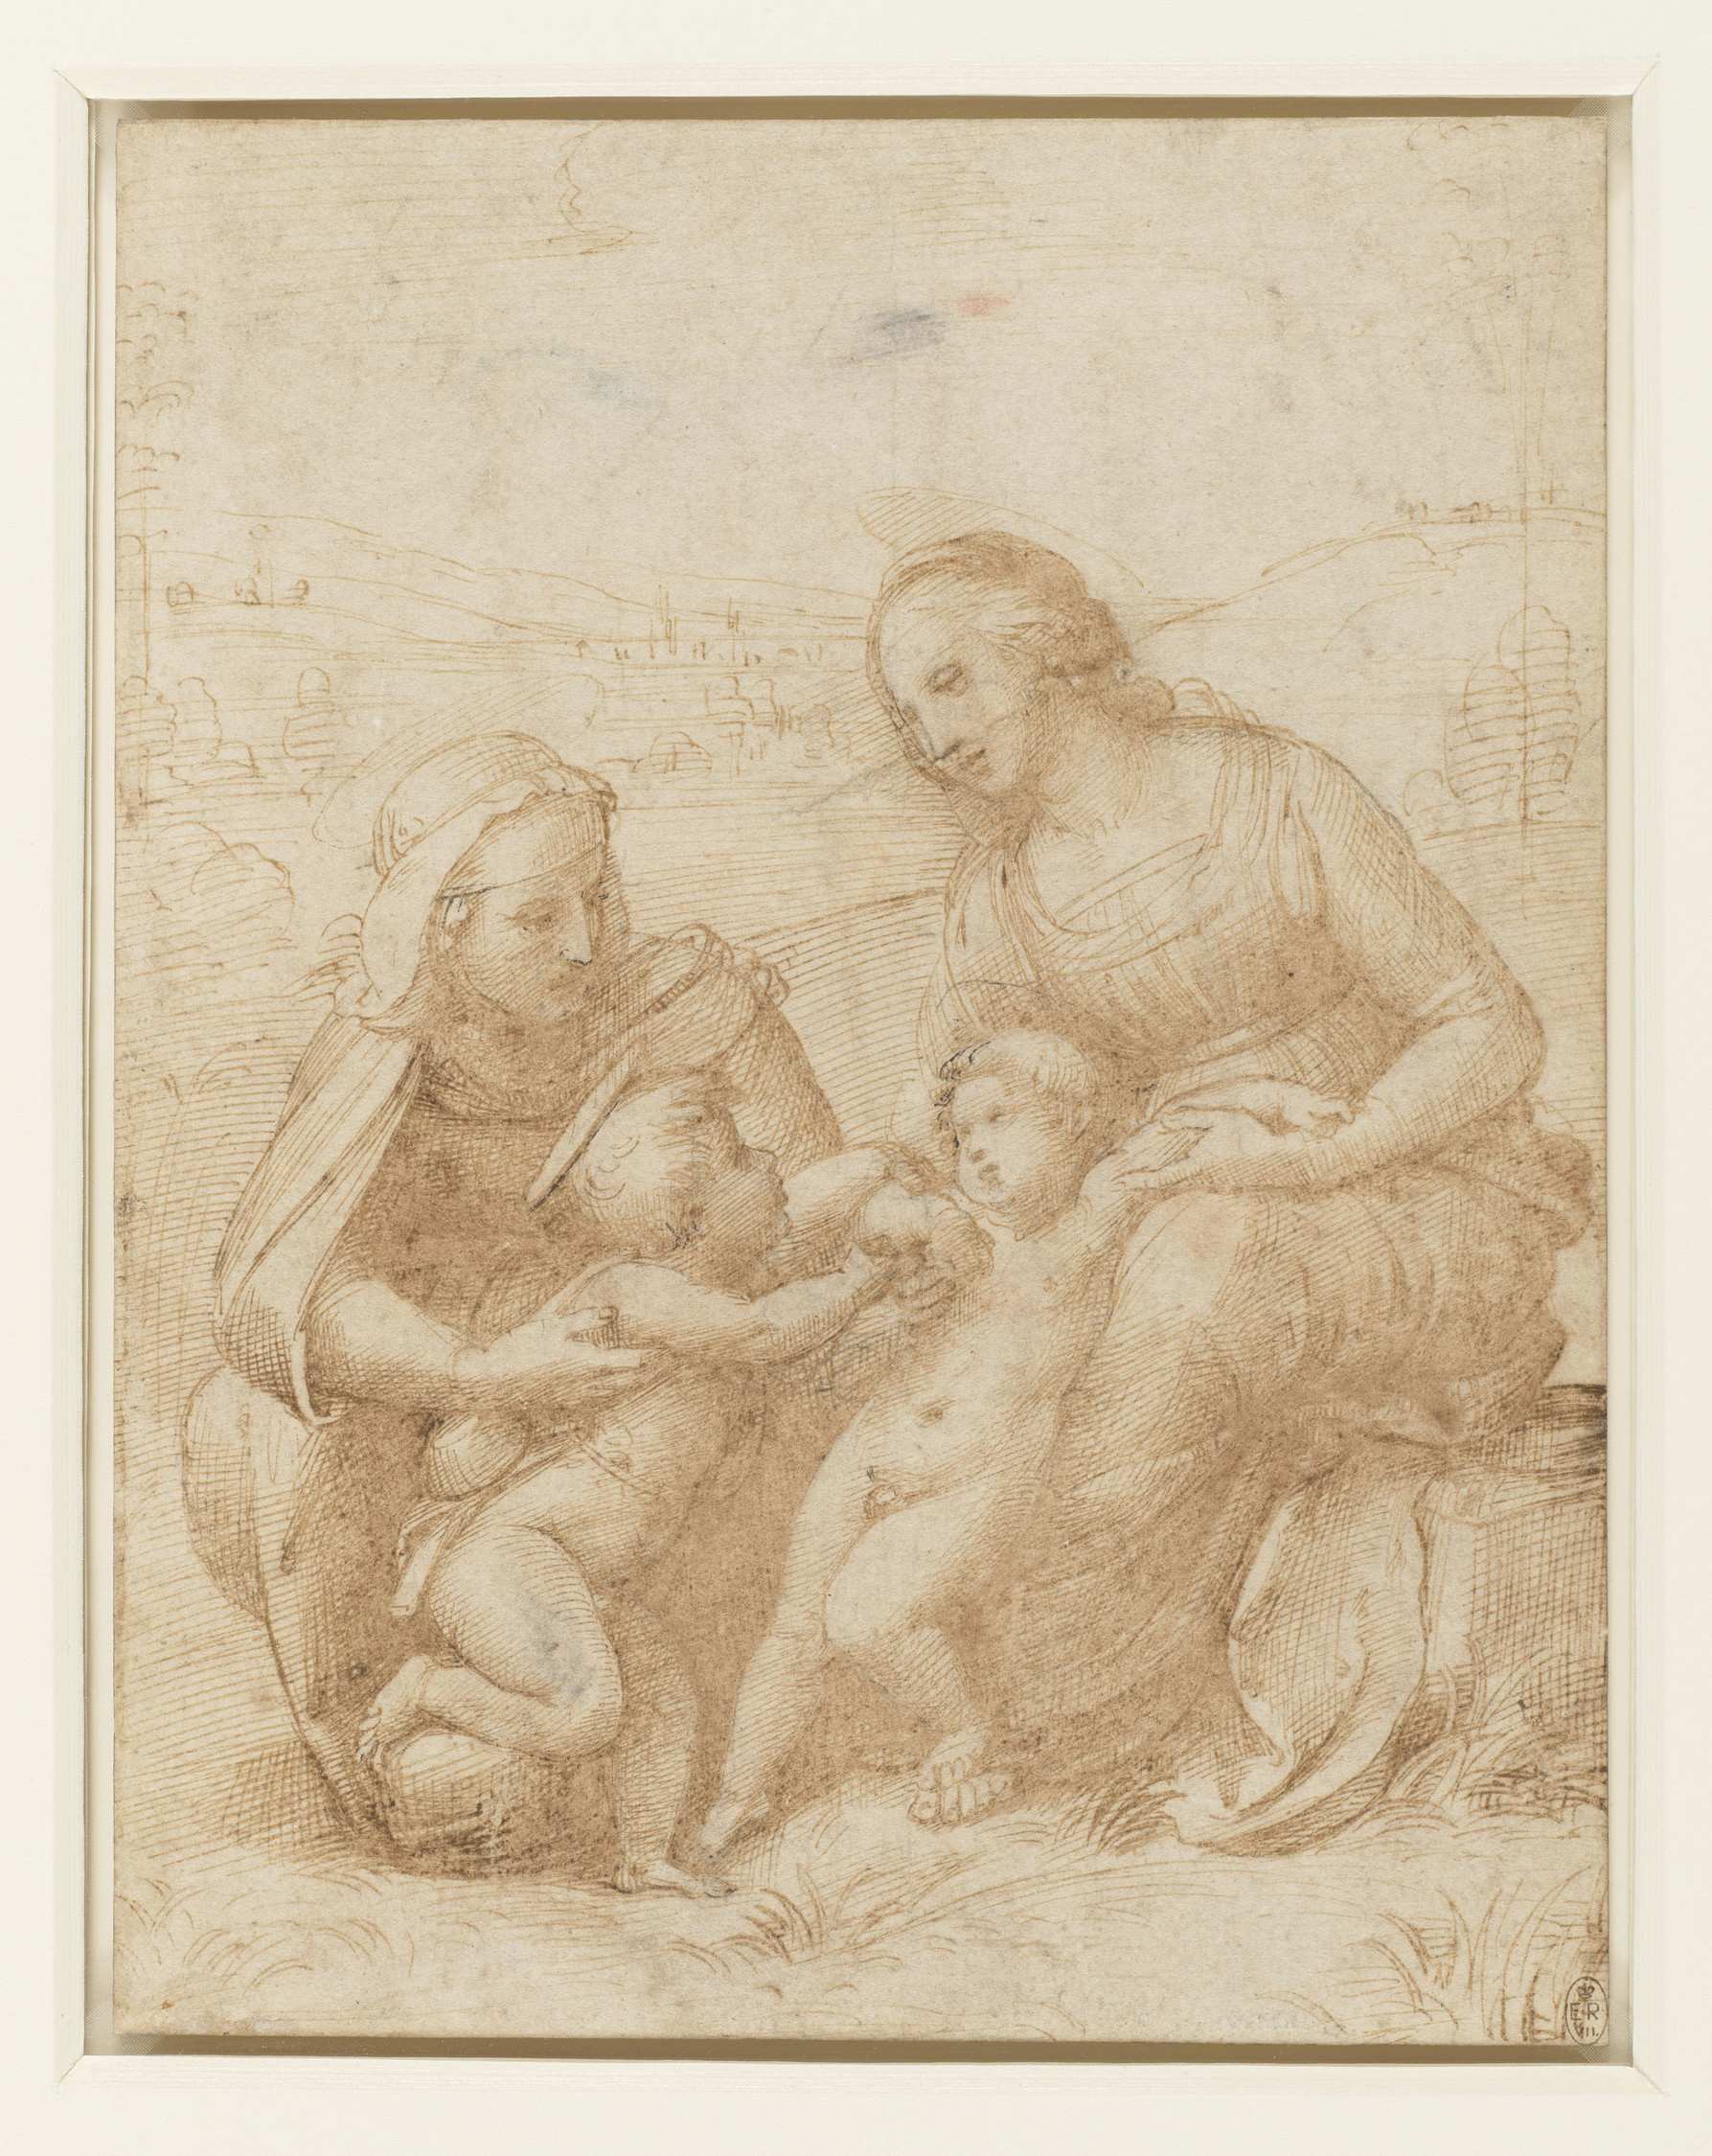 michelangelo drawing madonna and child 1525 - HD1787×2250